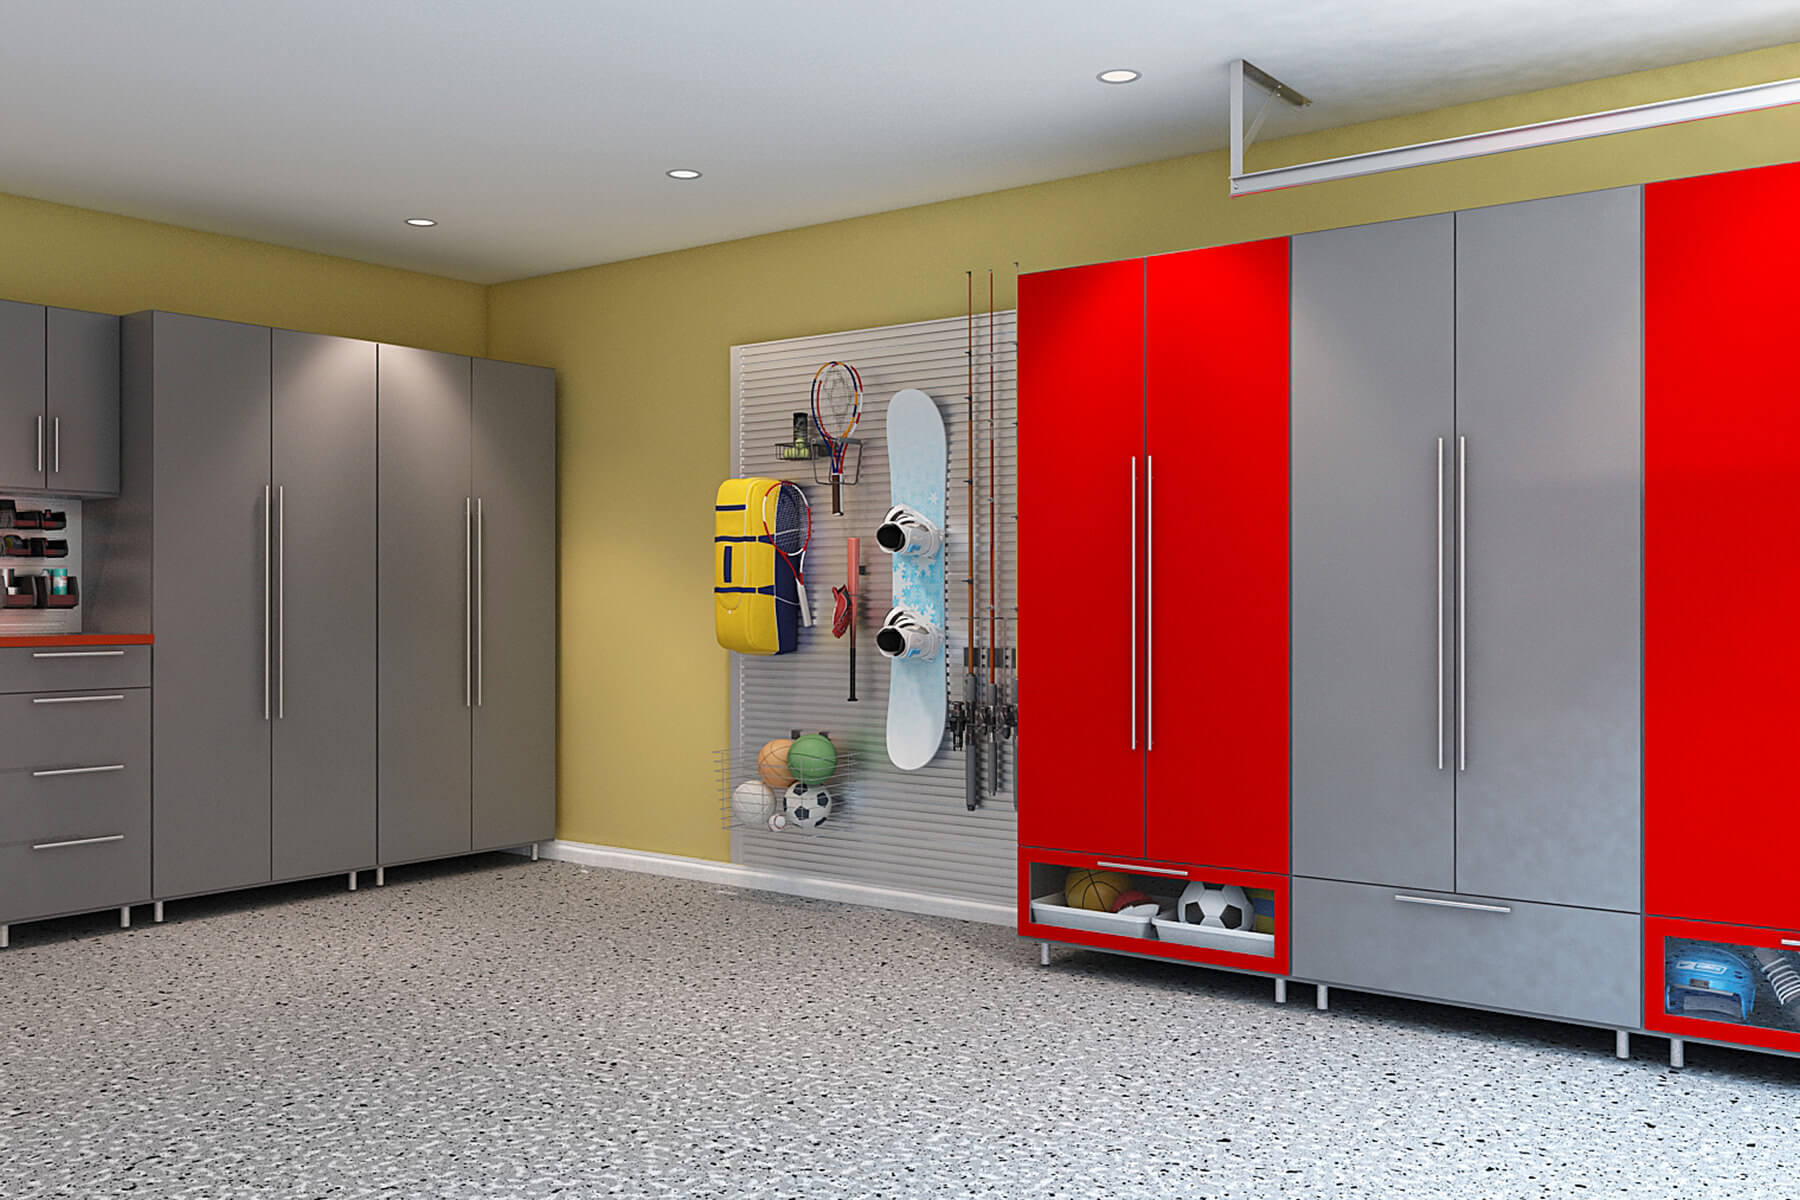 The Industrial Look Of The Tall Steel Gray Melamine Cabinets Is Contrasted  By The Boldness Of